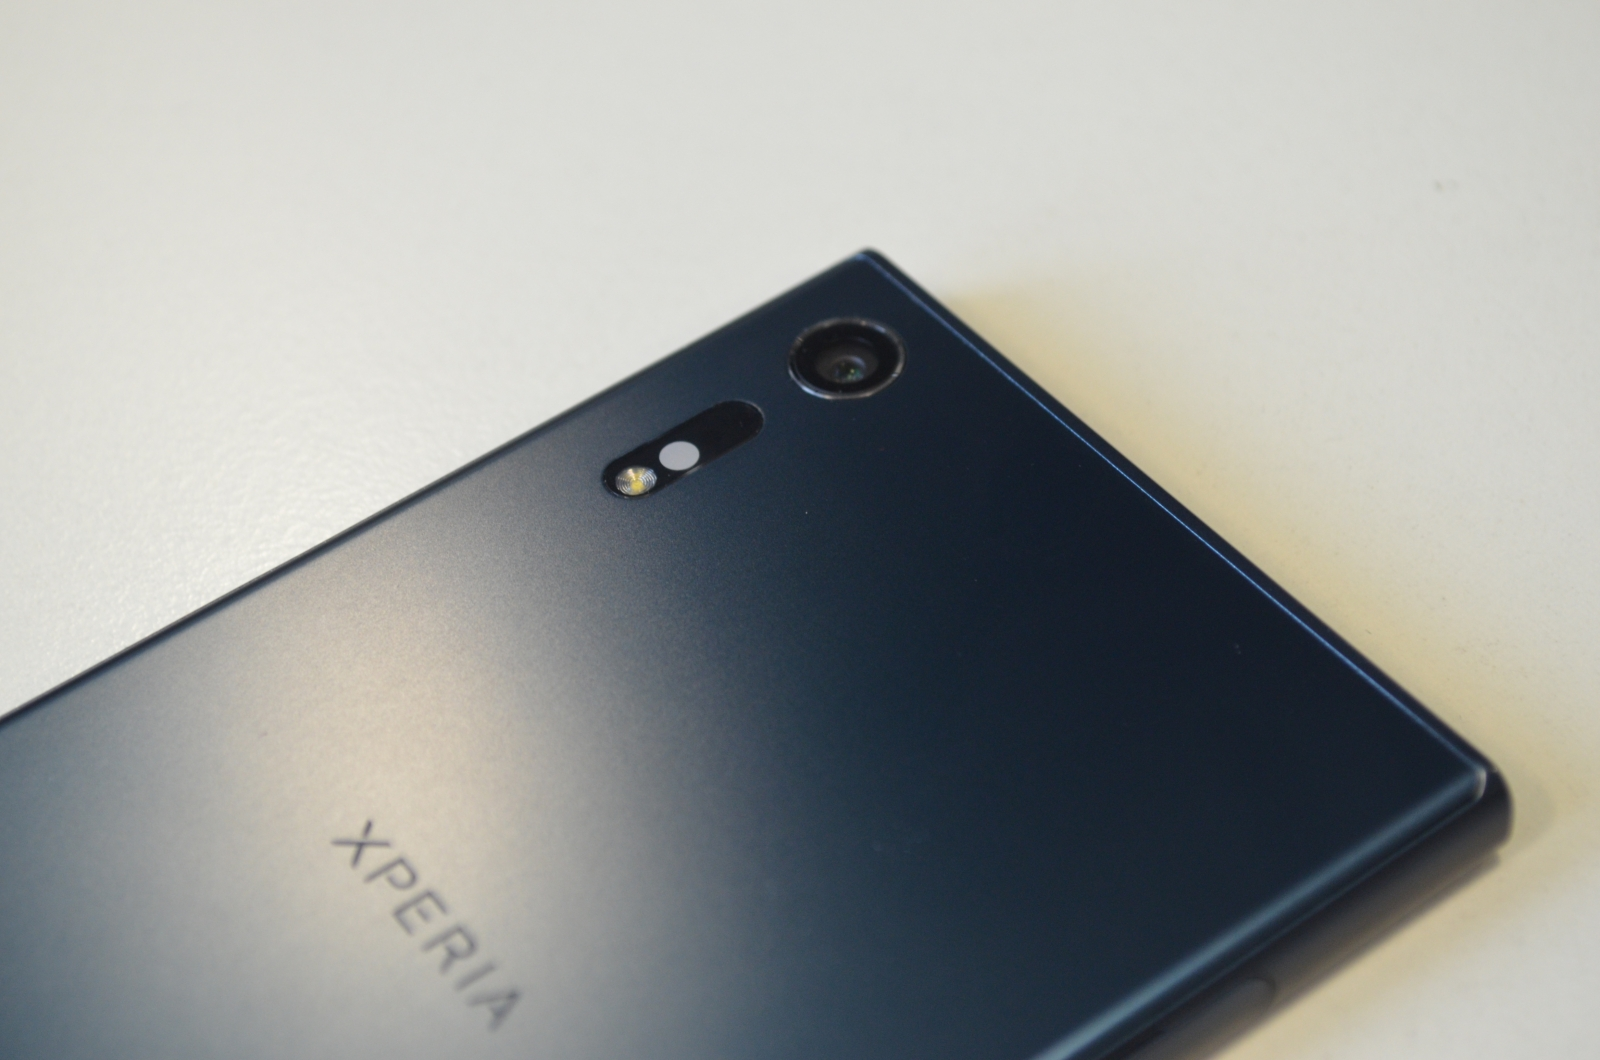 Sony Xperia XZ1, XZ1 Compact, and X1 key specs leaked